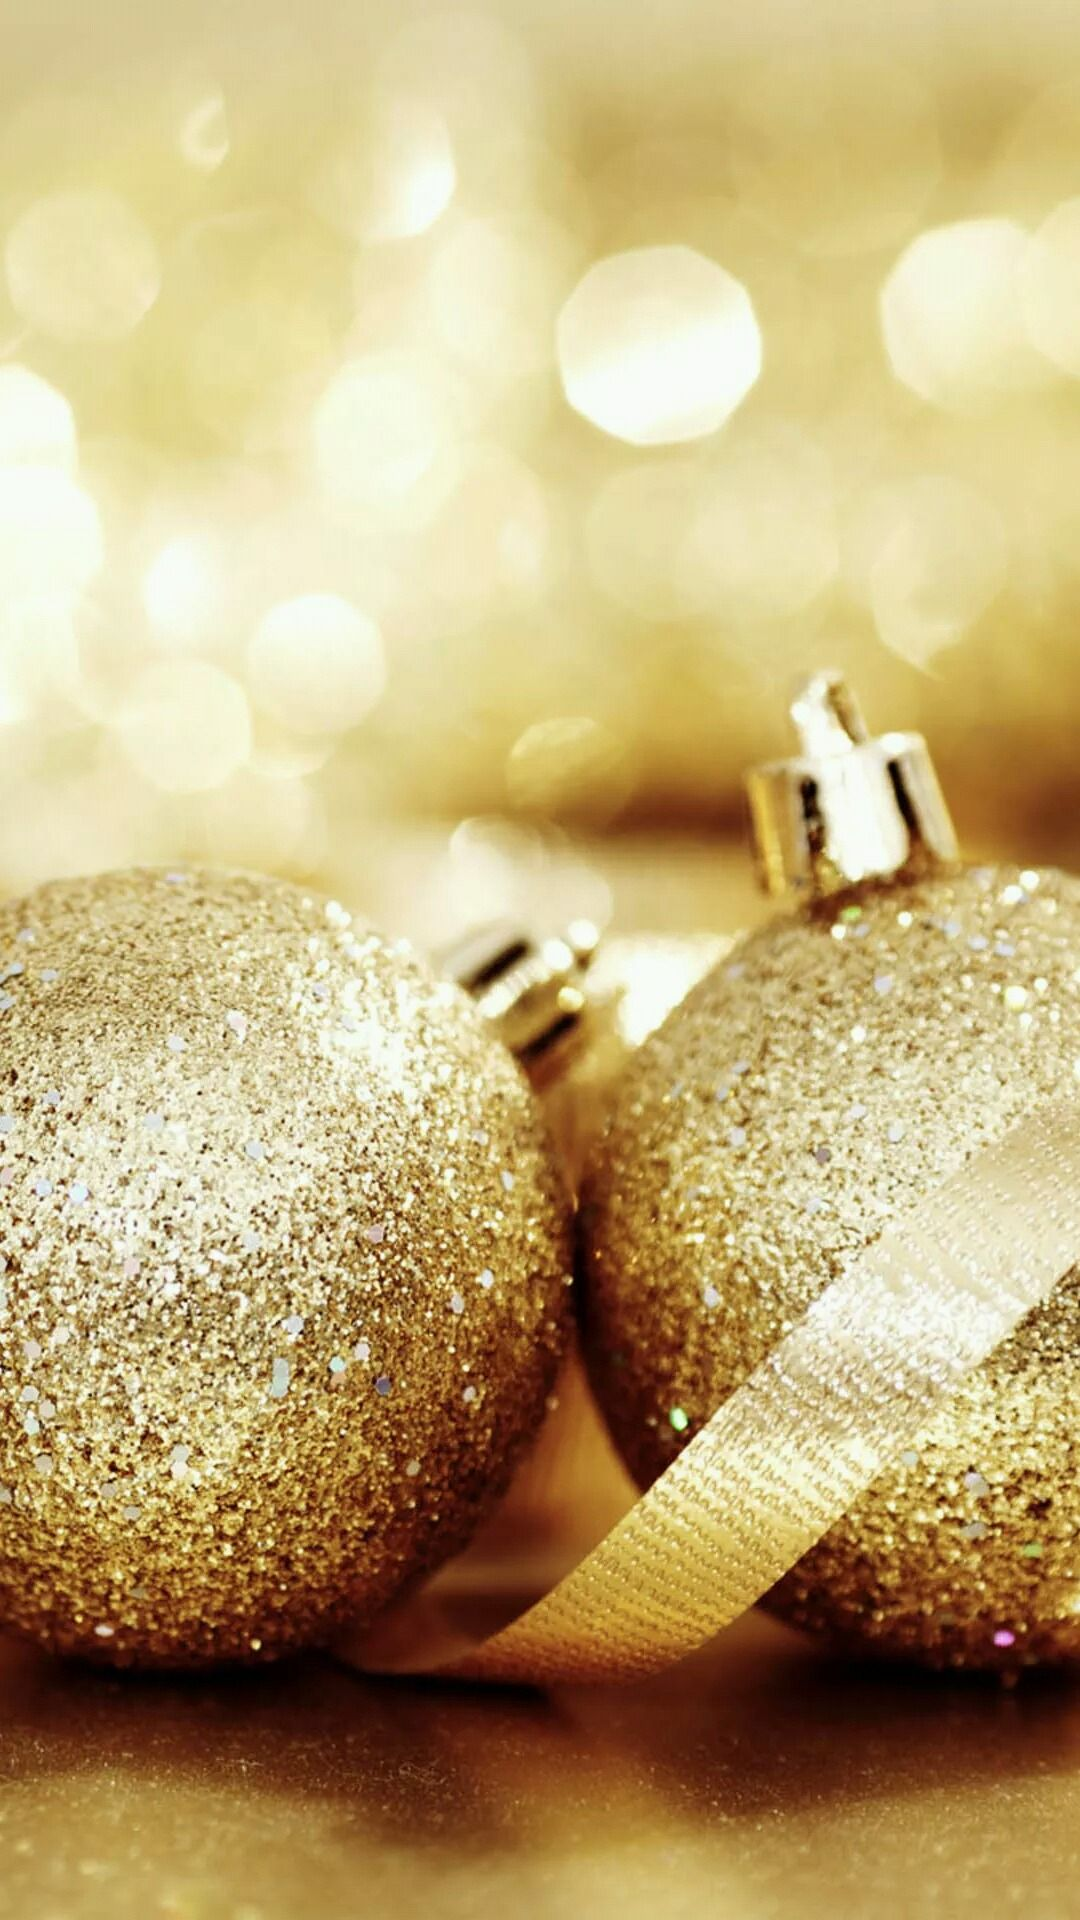 Golden Glitter Ornaments iPhone wallpapers. Merry Christmas